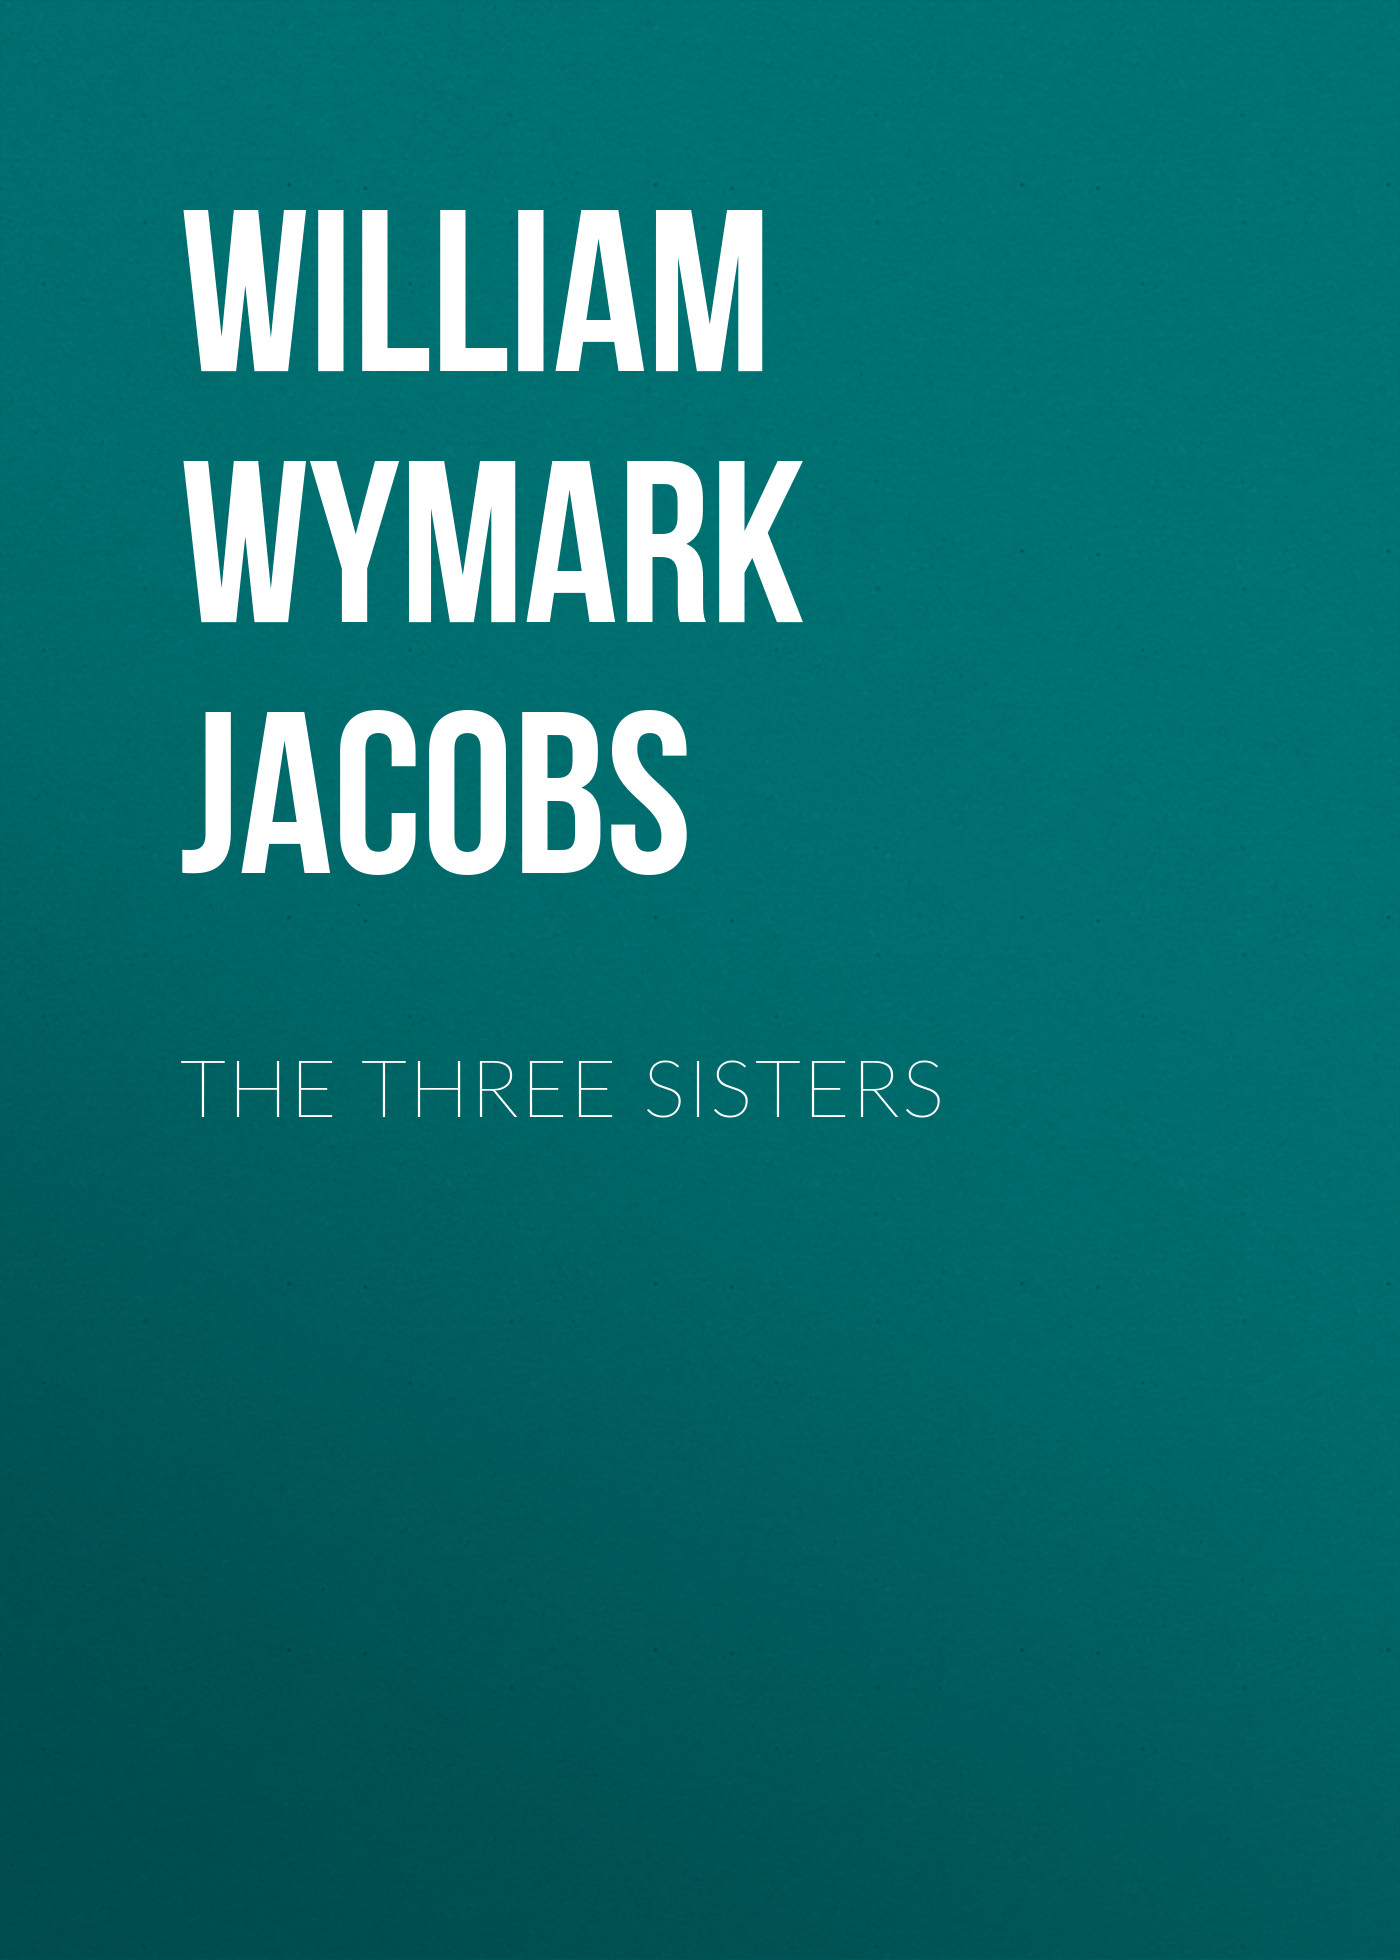 William Wymark Jacobs The Three Sisters